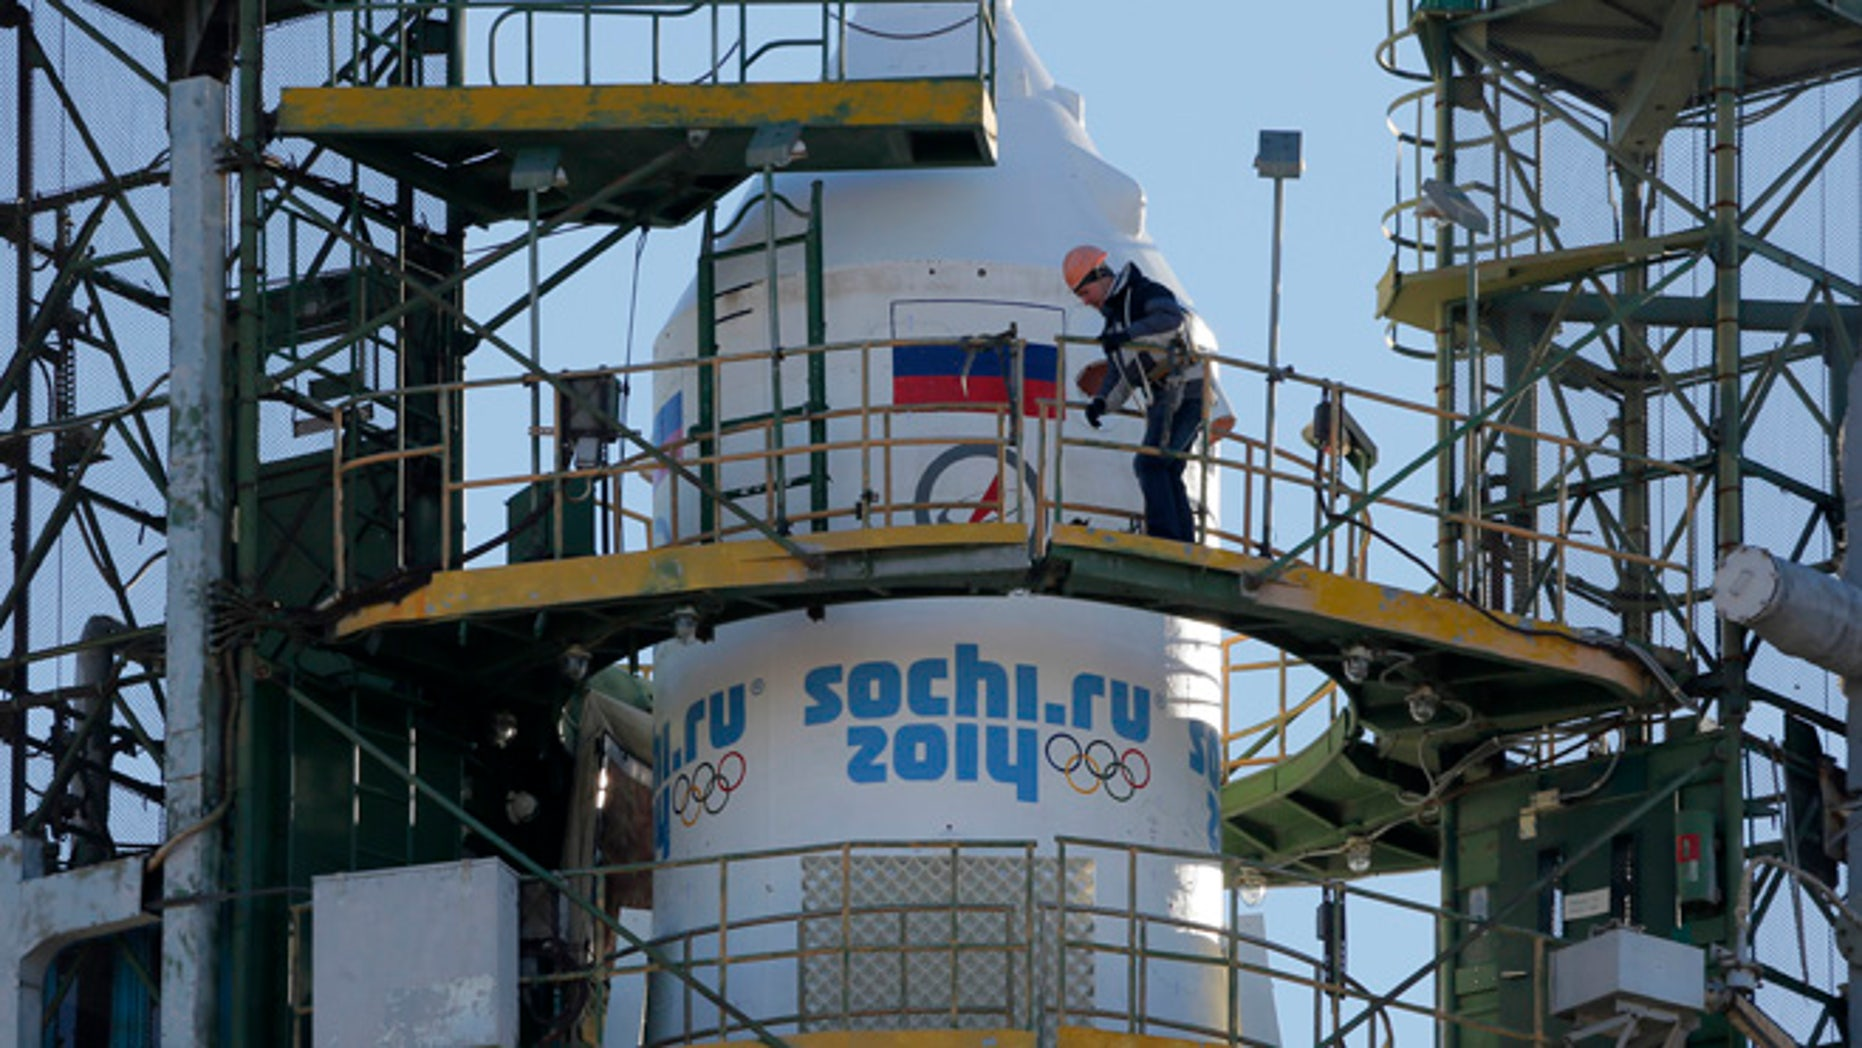 Nov. 5, 2013: A Baikonur Cosmodrome staff member works at Russia's Soyuz-FG booster rocket, emblazoned with the emblem of the Winter Olympics in Sochi, loaded with Soyuz TMA-11M space capsule that will carry new crew to the International Space Station (ISS) as the rocket is transported from hangar to the launch pad at the Russian leased Baikonur cosmodrome, Kazakhstan. For the first time, it will also carry an Olympic torch to space as part of the ongoing Olympic torch relay. The torch will be brought back along with the station's current crew. The rocket is scheduled to blast off on Thursday, Nov. 7.